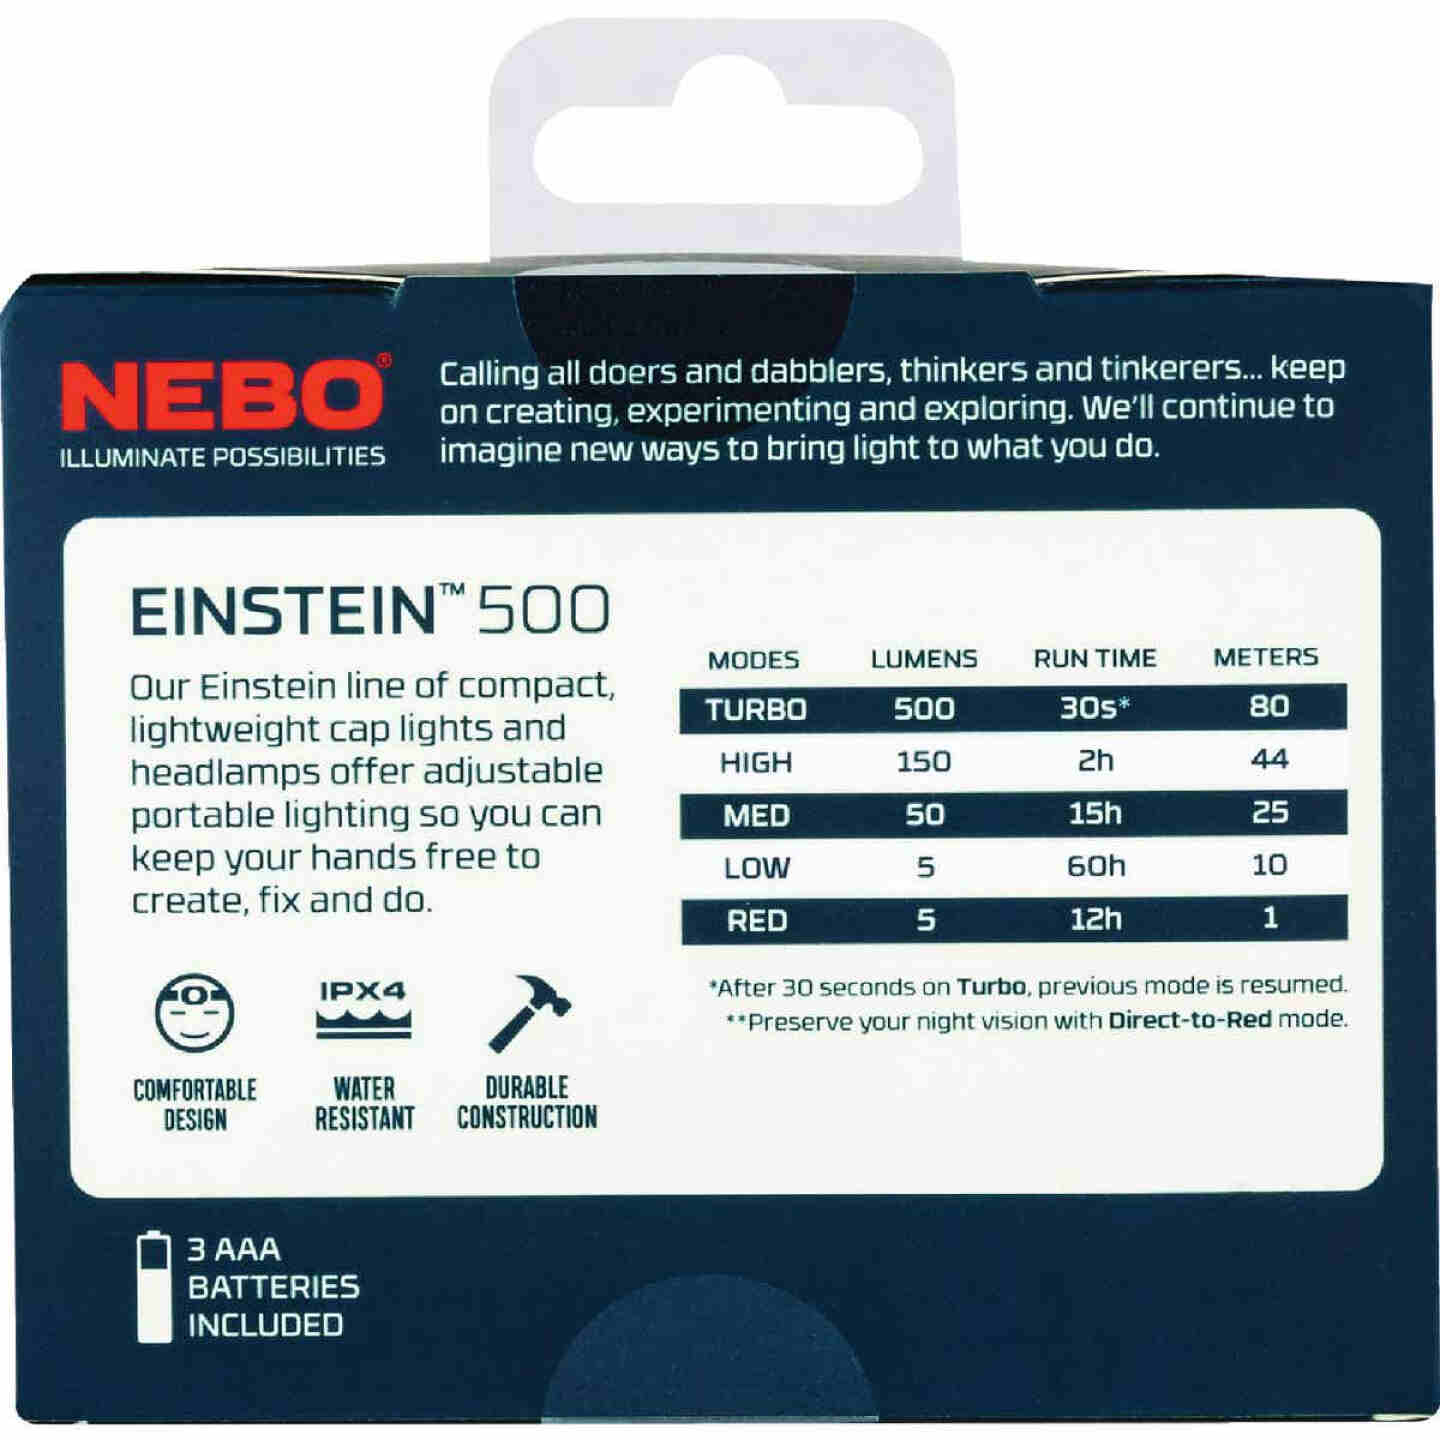 Nebo Einstein 500 Lm. LED 3AAA Headlamp Image 3